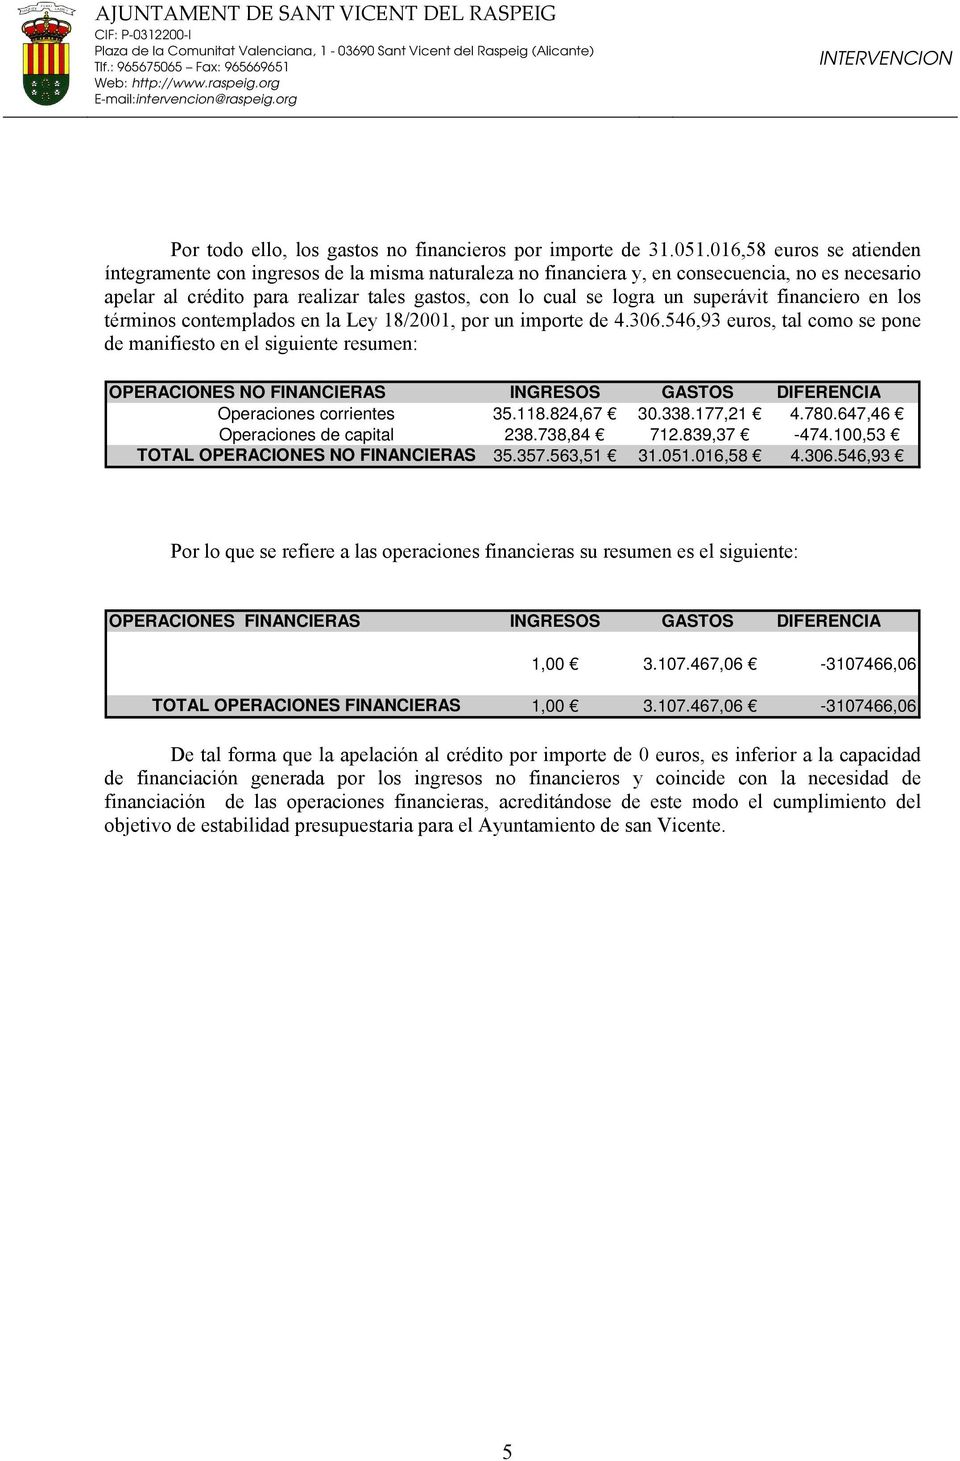 647,46 Operaciones de capital 238.738,84 712.839,37-474.100,53 TOTAL OPERACIONES NO FINANCIERAS 35.357.563,51 31.051.